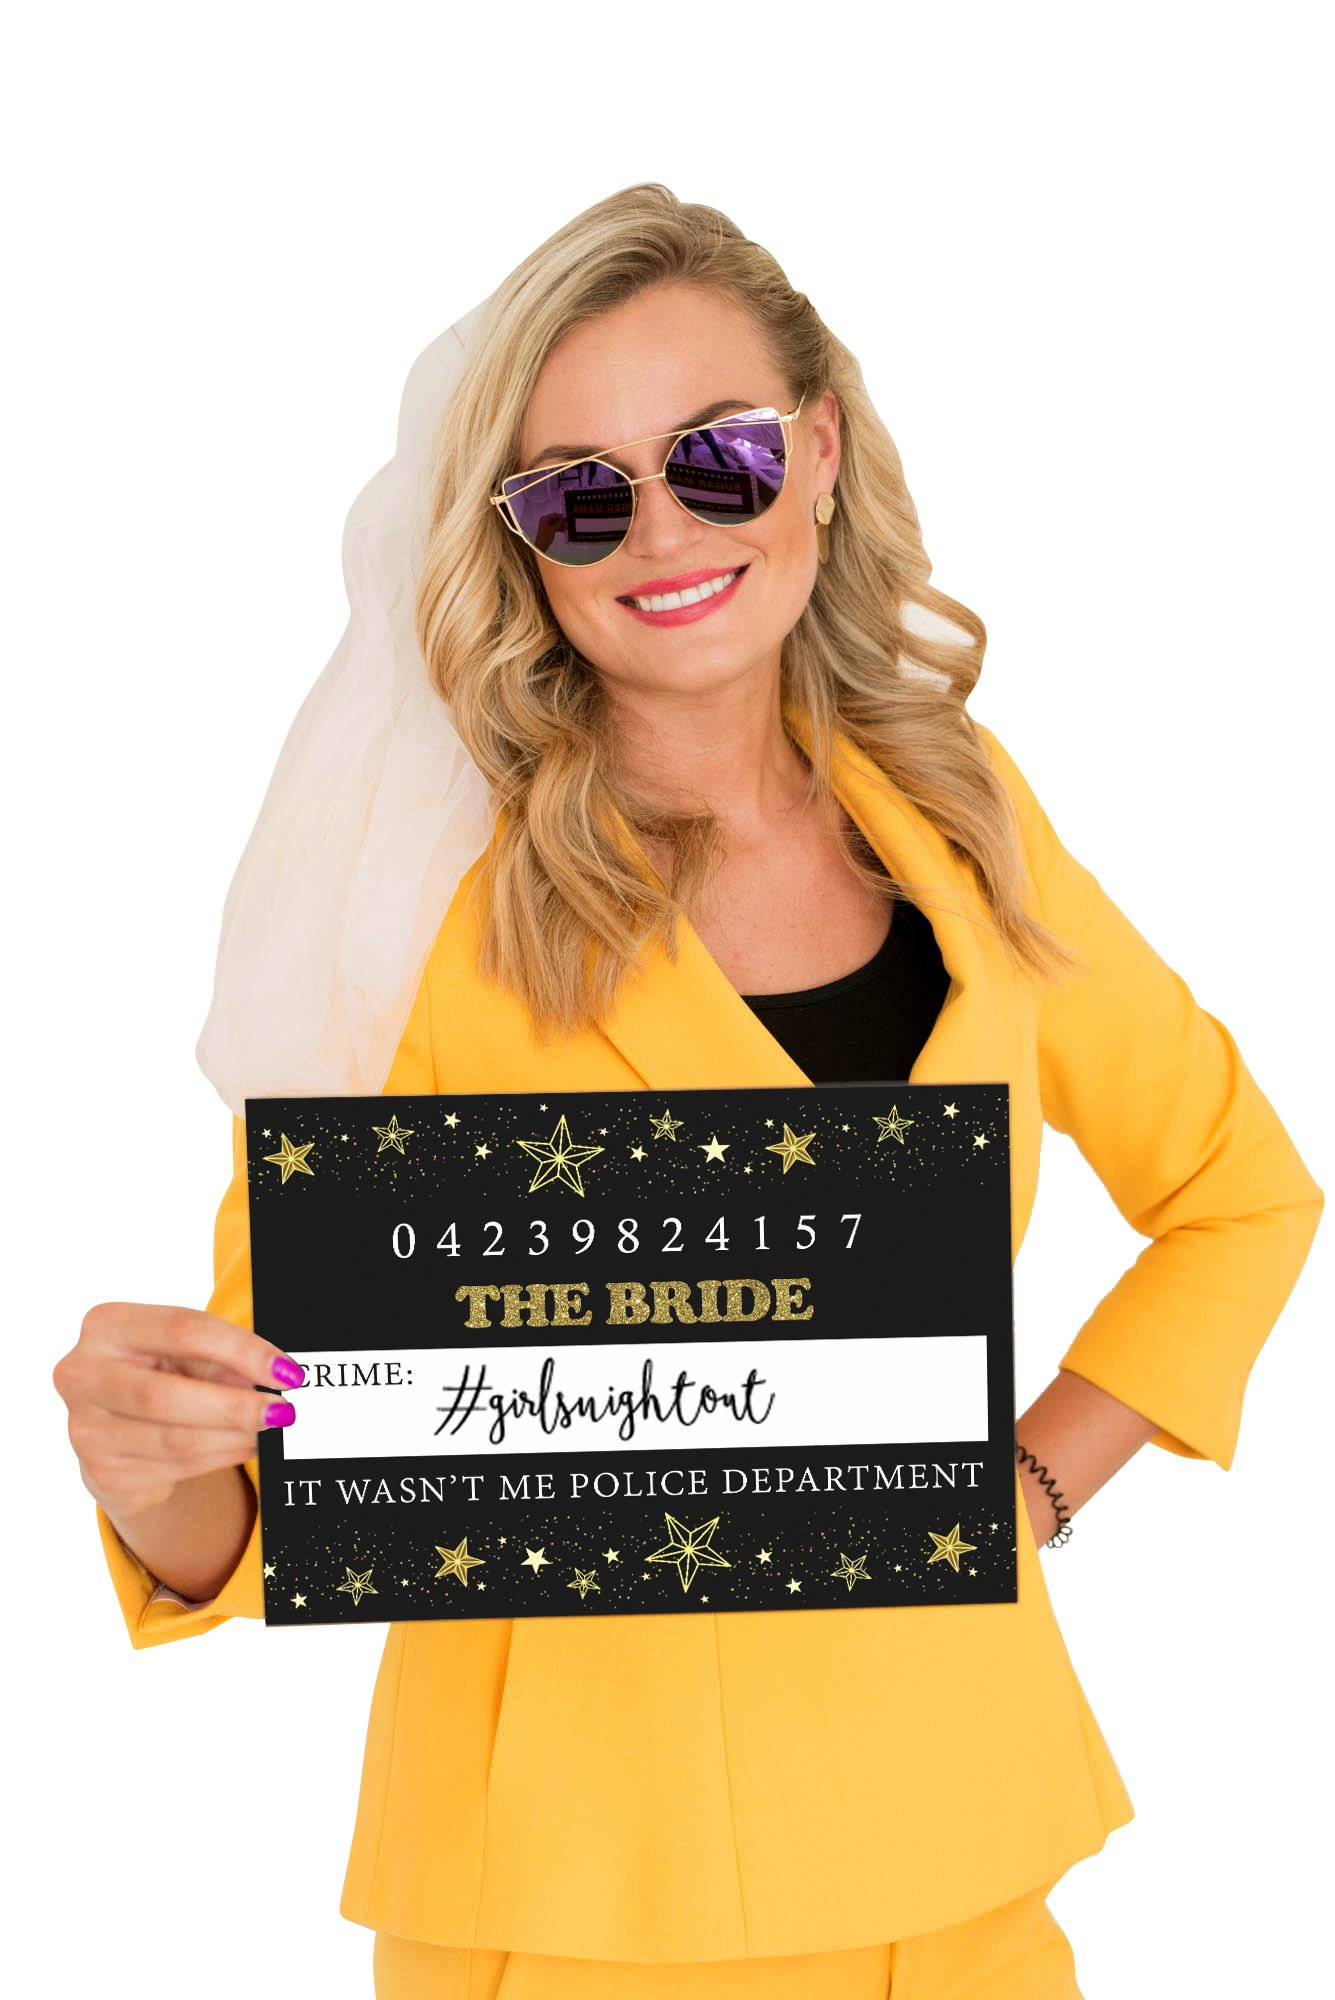 Weenca Bachelorette Party Mugshots-Funny & Hilarious Party Mugshots For Girls Night Out-20 Reversible Mugshot Signs-40 Variations